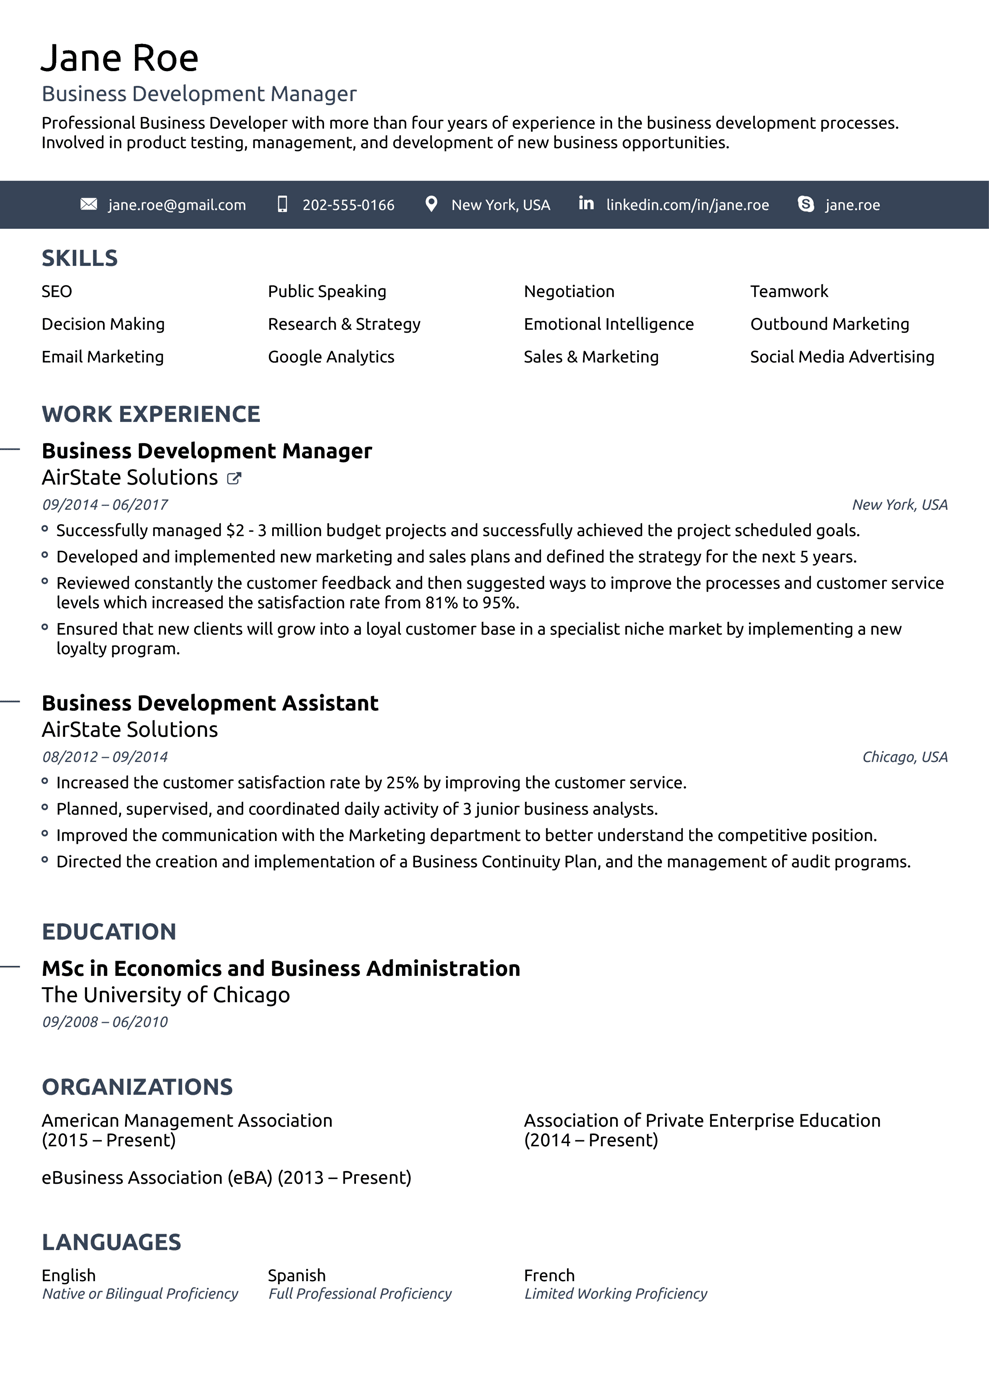 Free Resume Templates for 2019 [Download Now]